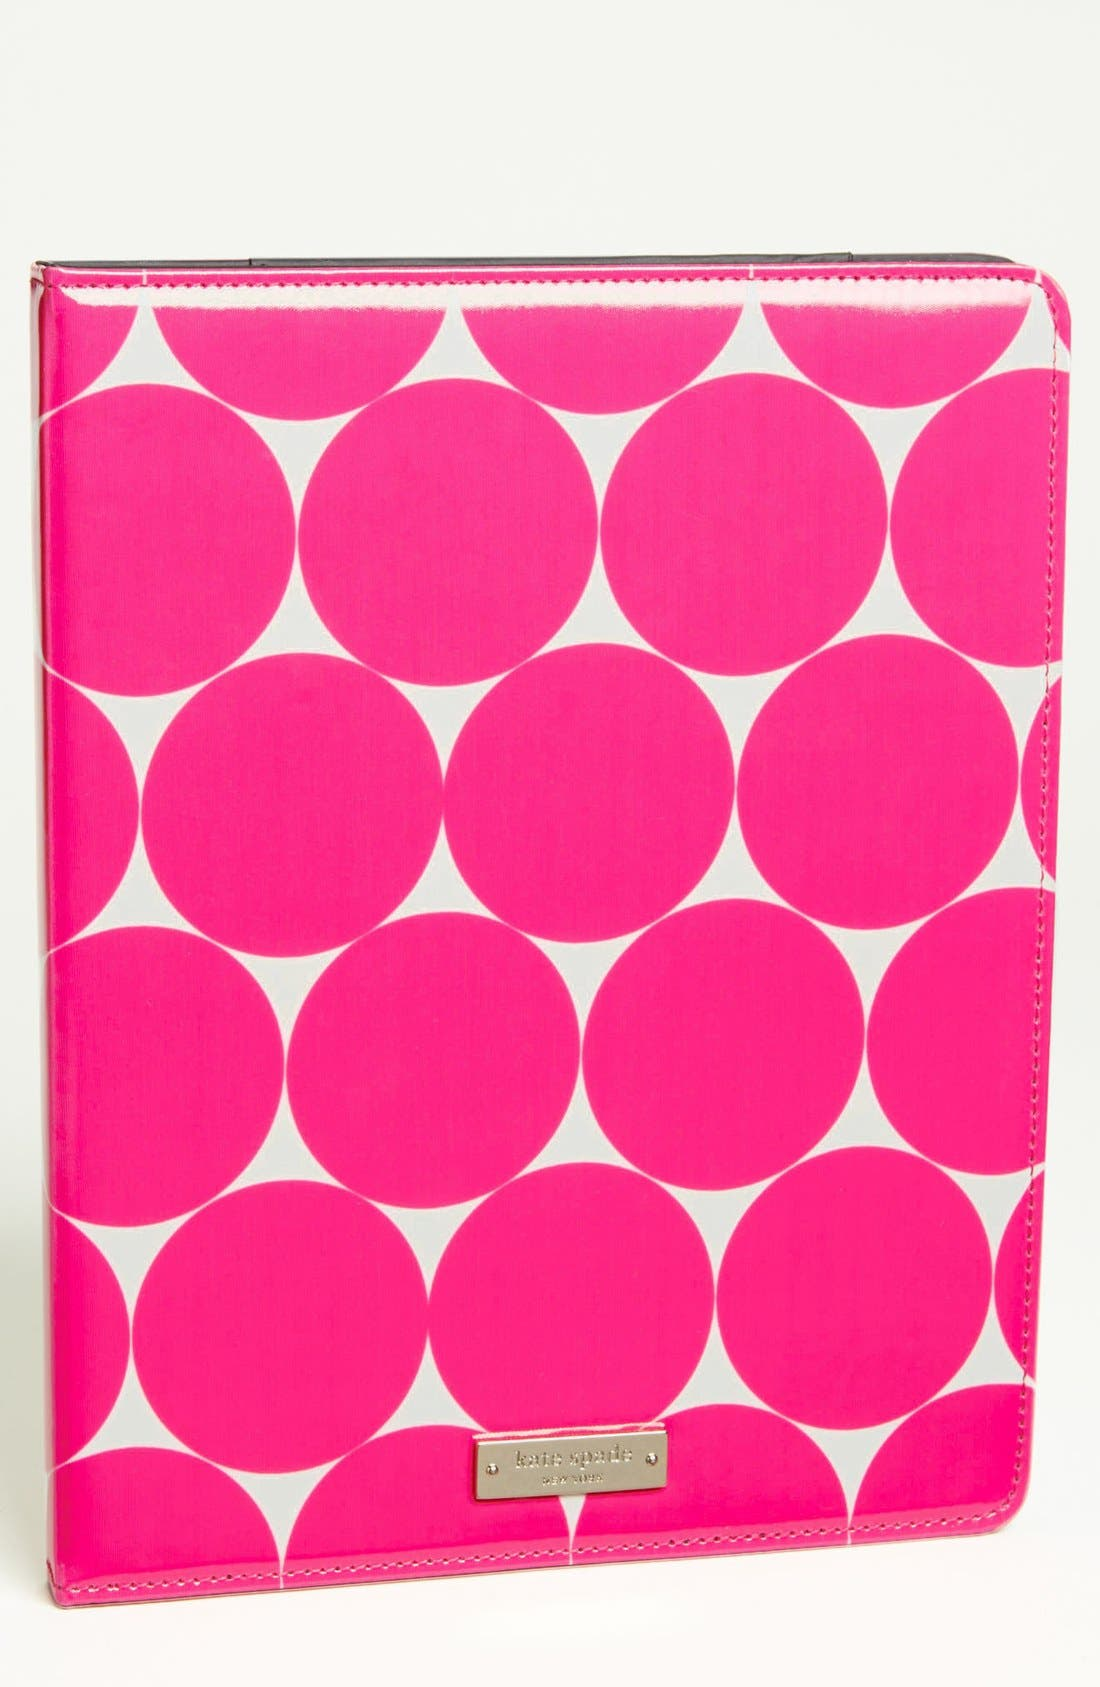 Main Image - kate spade new york 'deborah dot' iPad folio